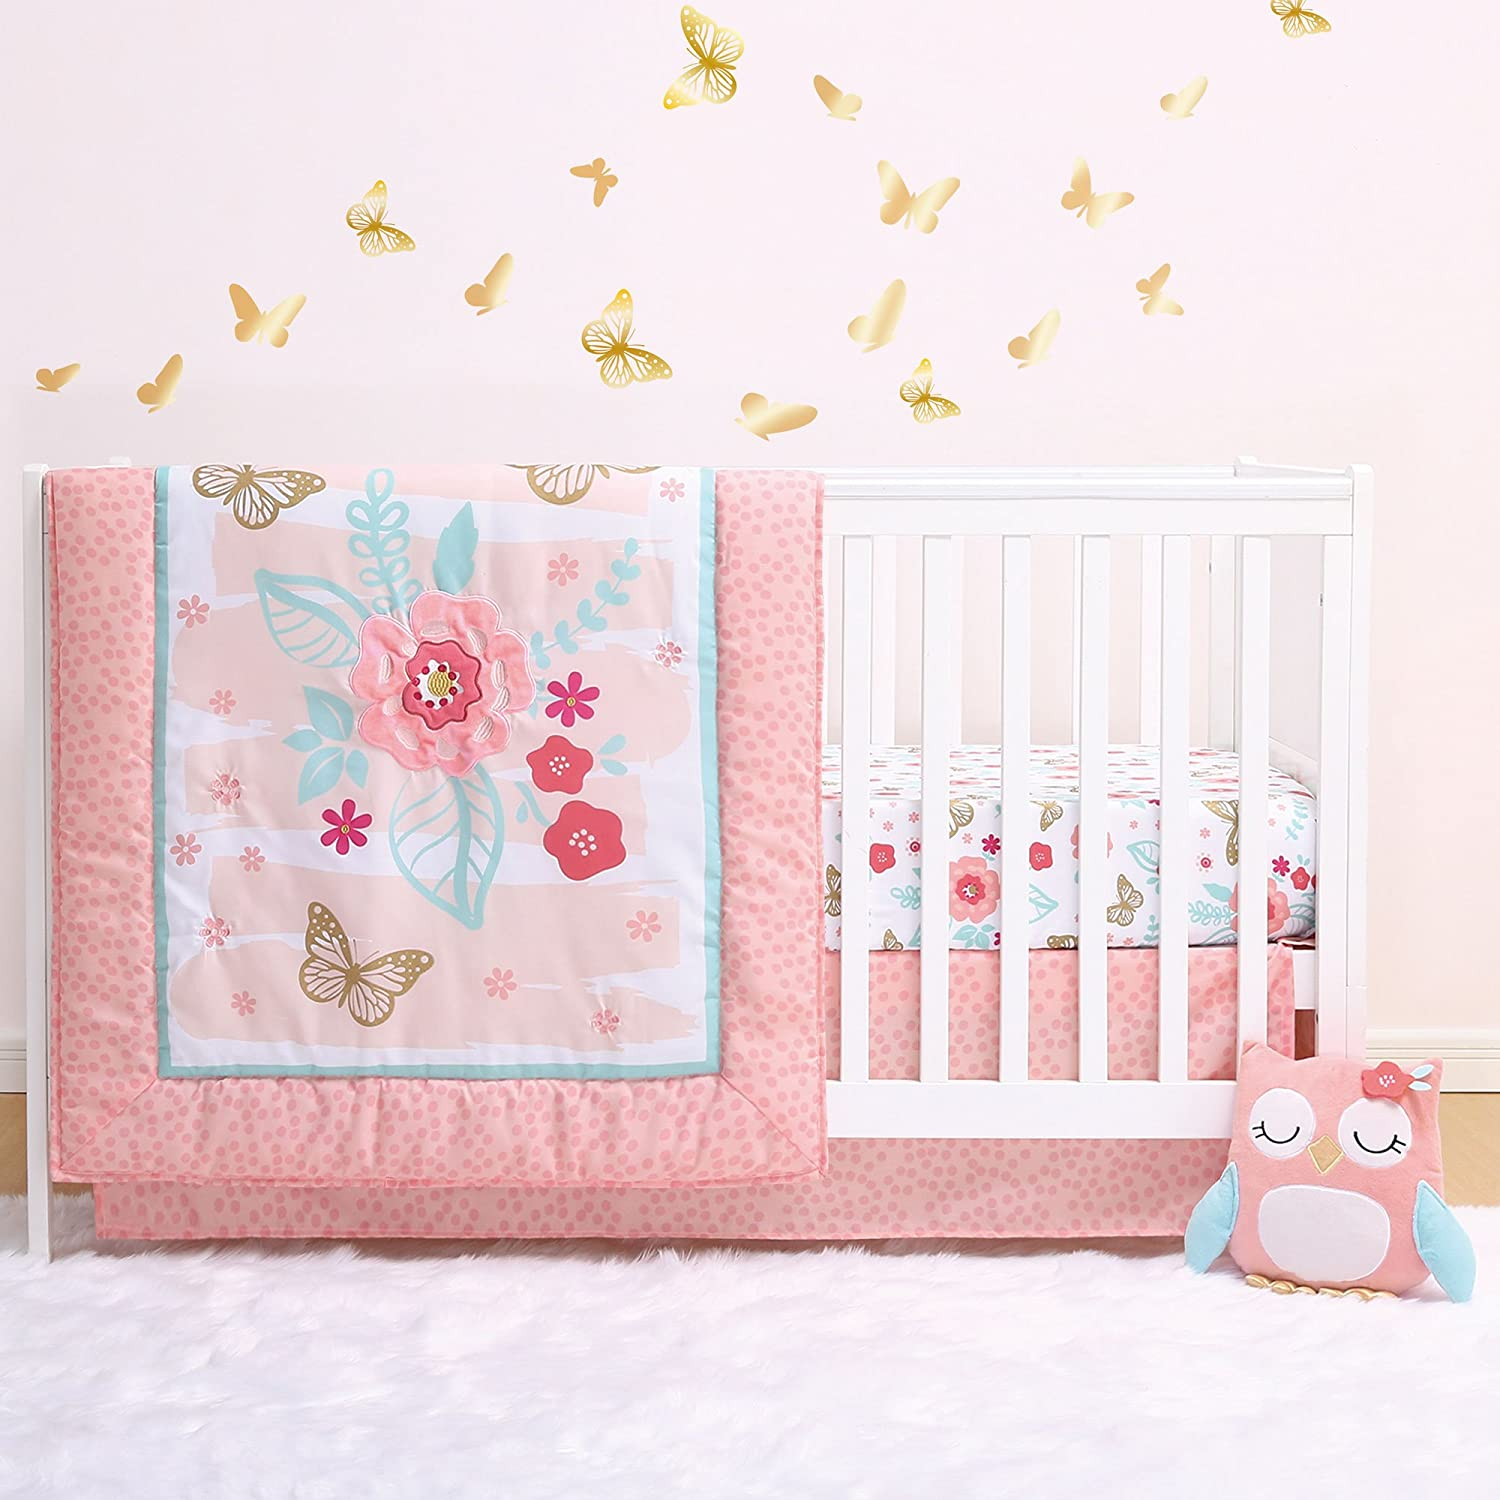 Aflutter 4-Piece Butterfly and Flowers Baby Crib Bedding Set by Little Haven Farallon Brands BS4LHAFL